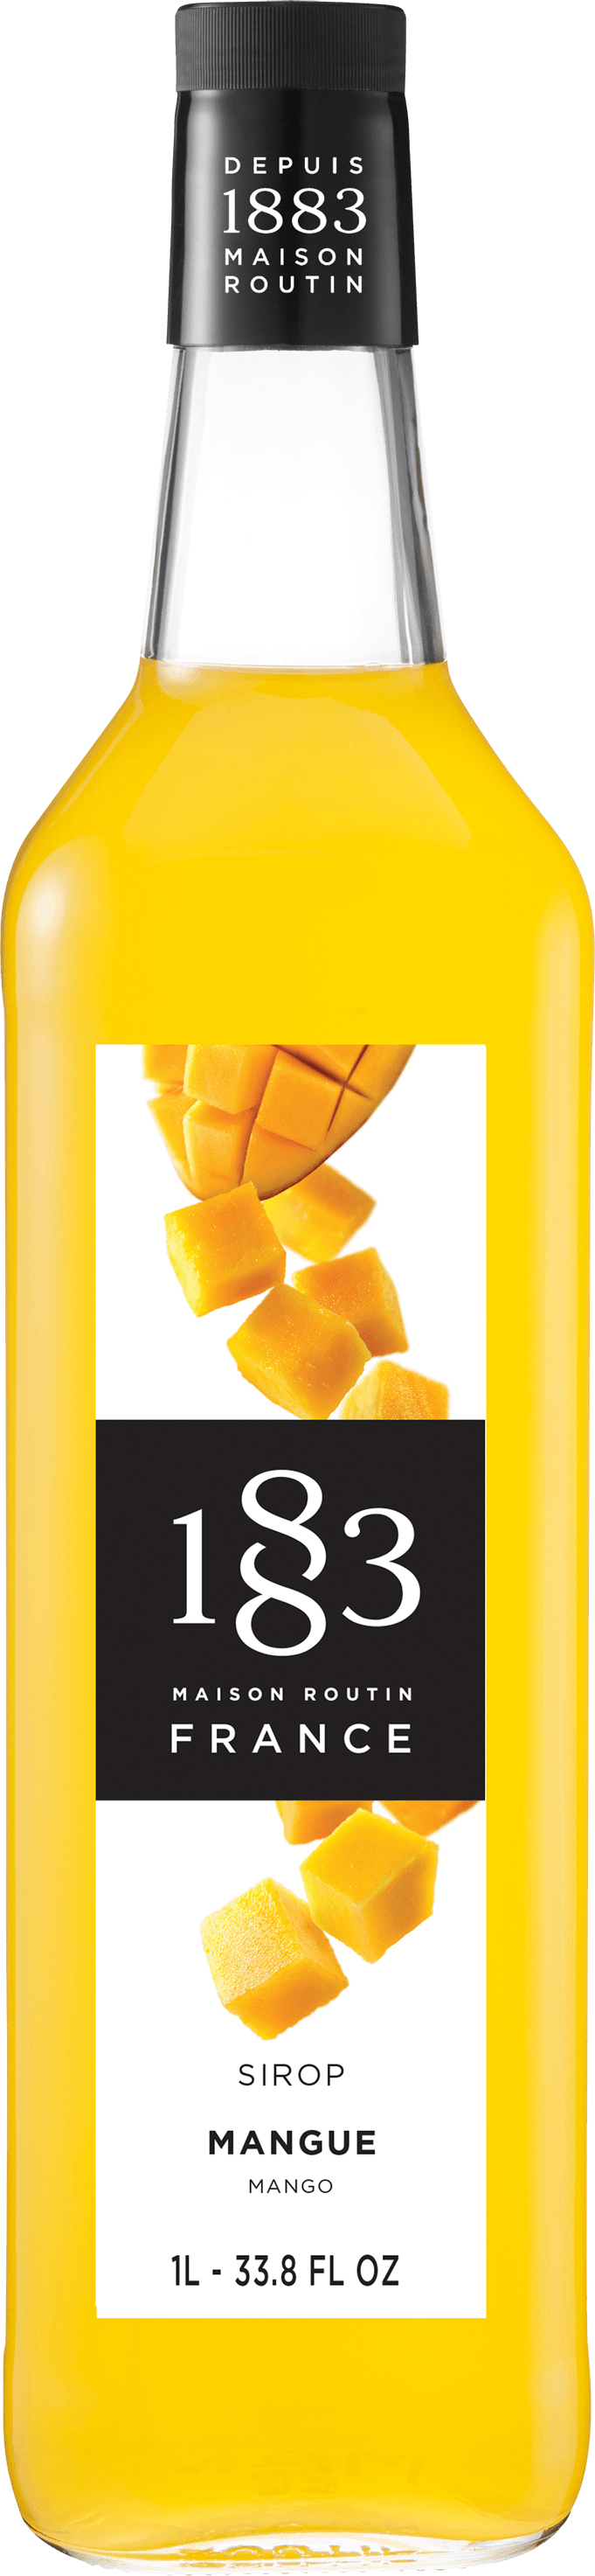 1883 Mango Syrup 1 Liter/33.8 FL OZ Bottle - Beverage Solutions